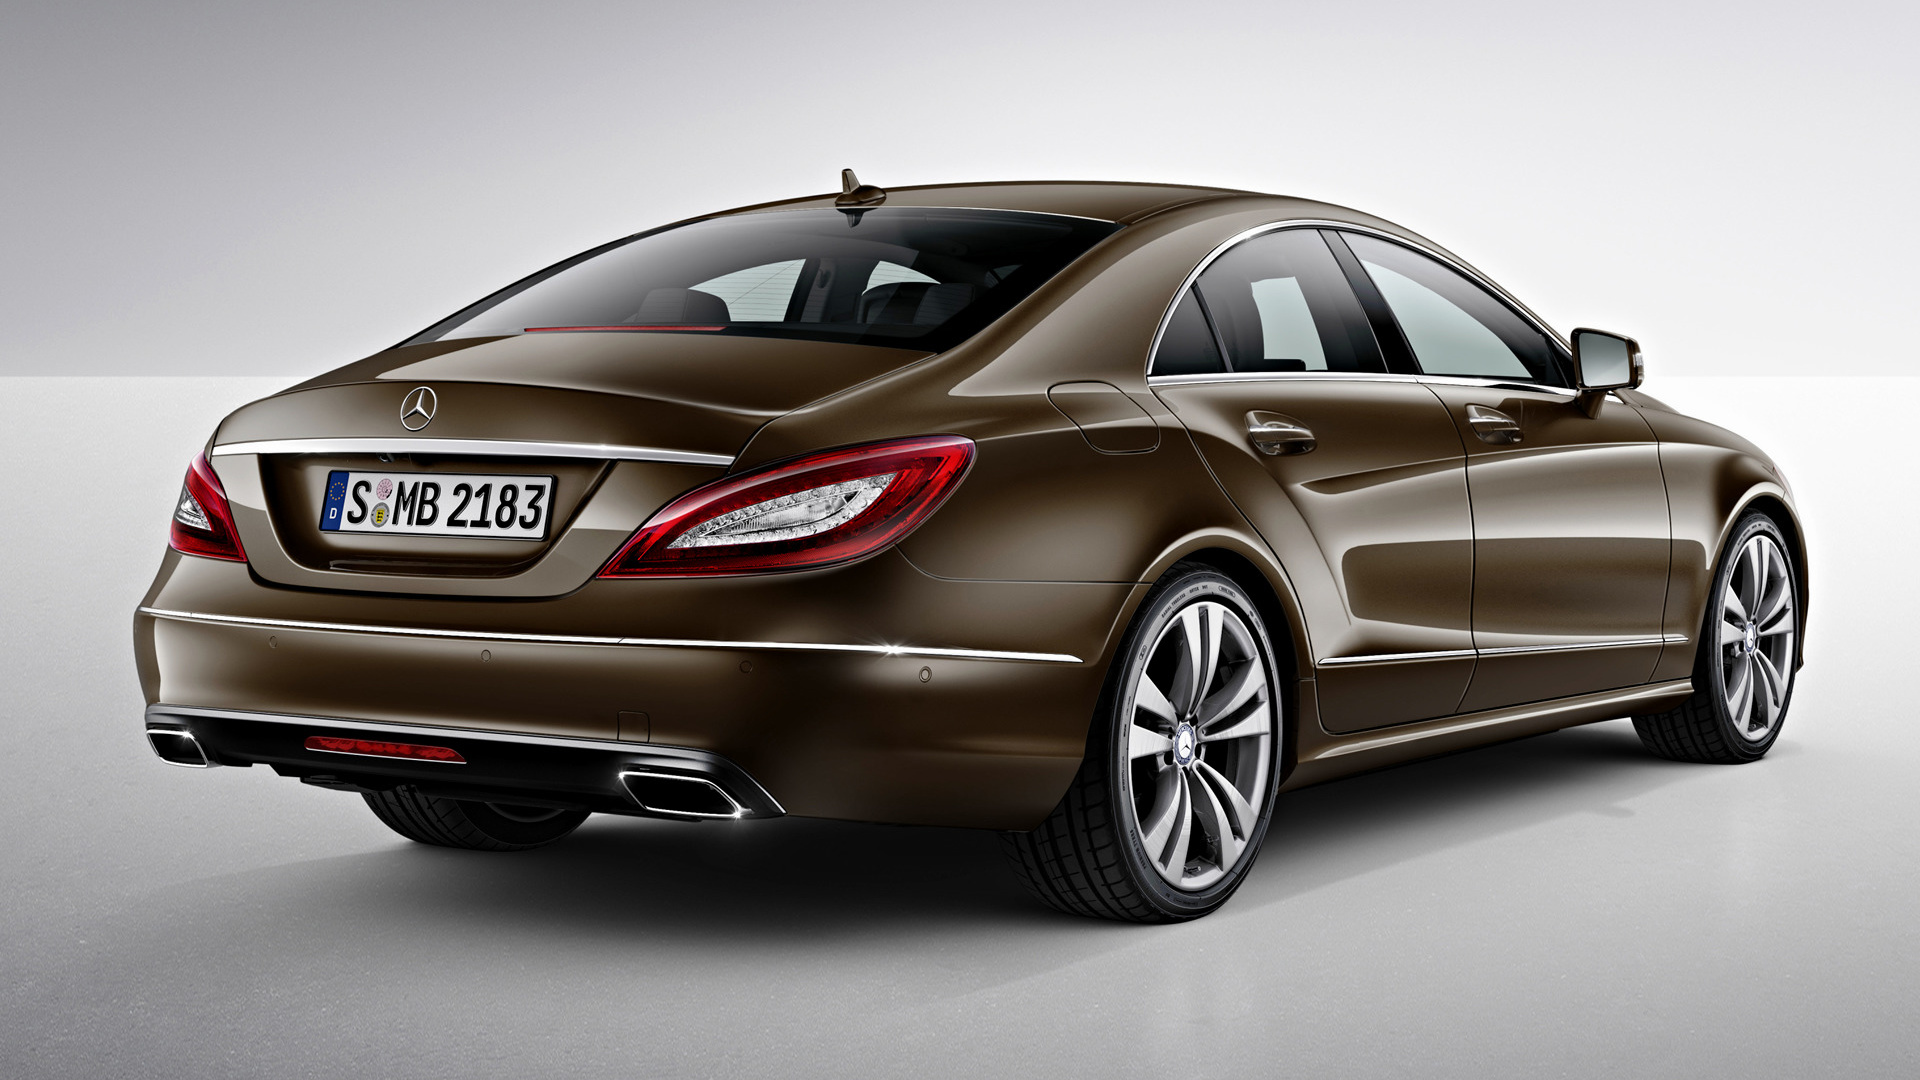 Mercedes benz cls class 2014 wallpapers and hd images for Mercedes benz cls class